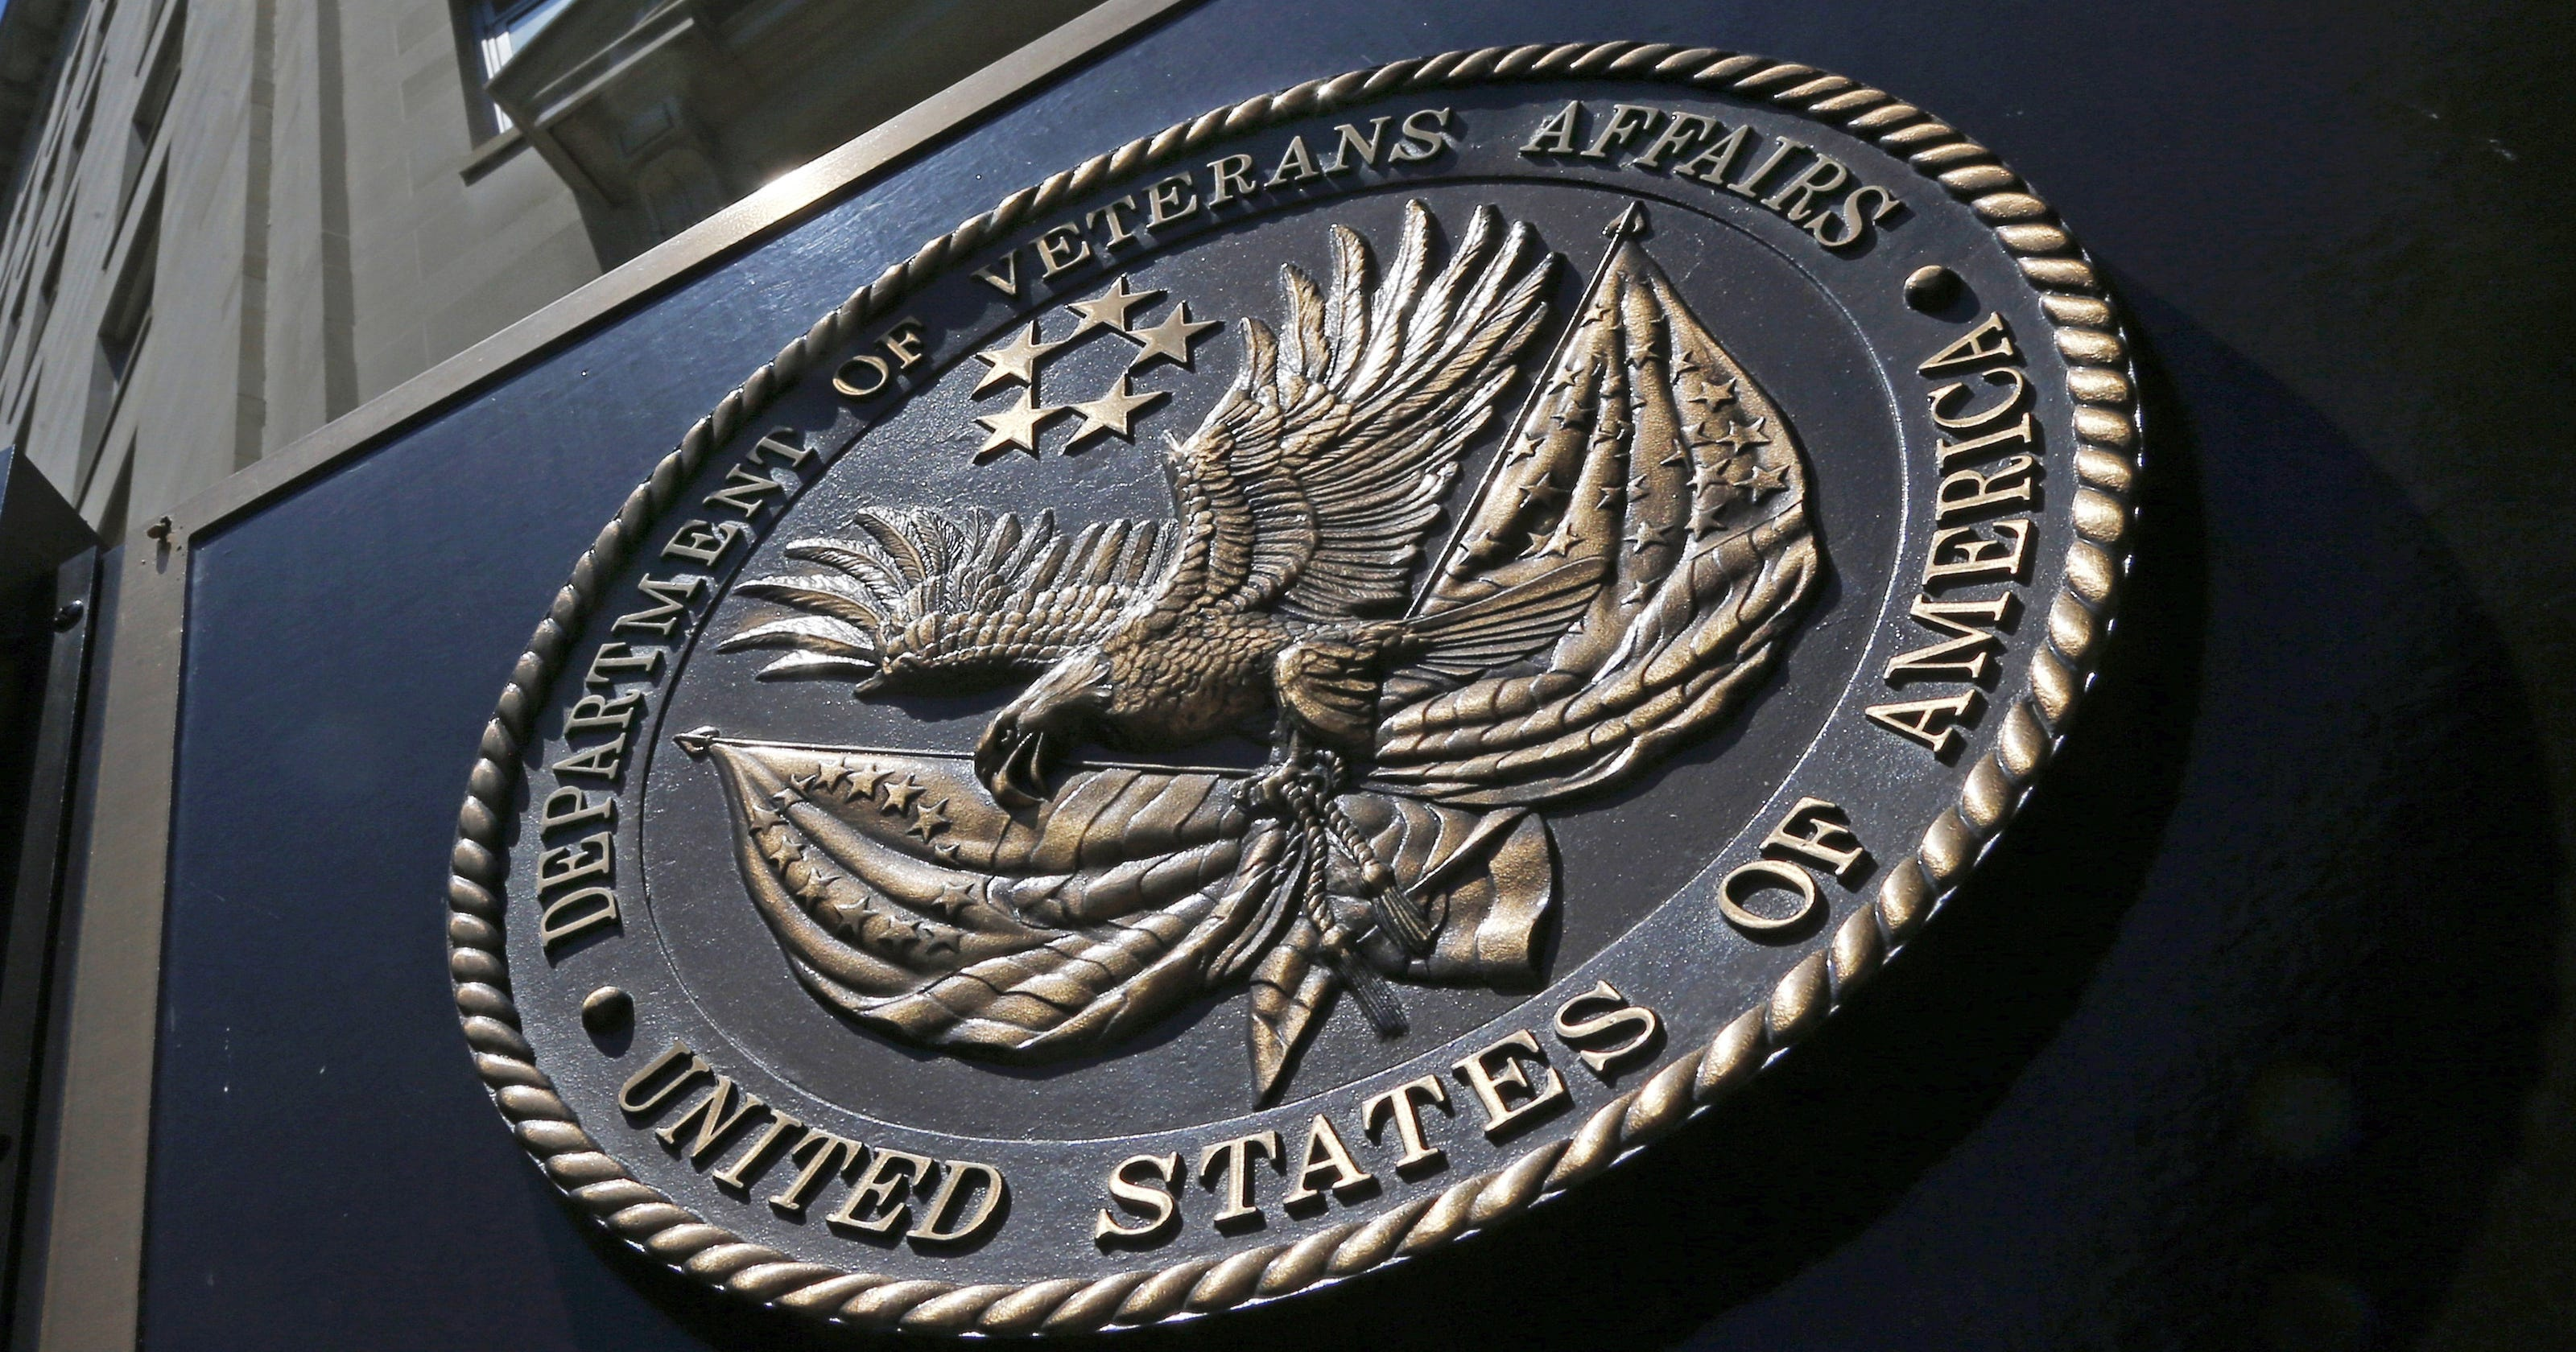 Exclusive Internal Report Details Vets Run In With Va Police Death